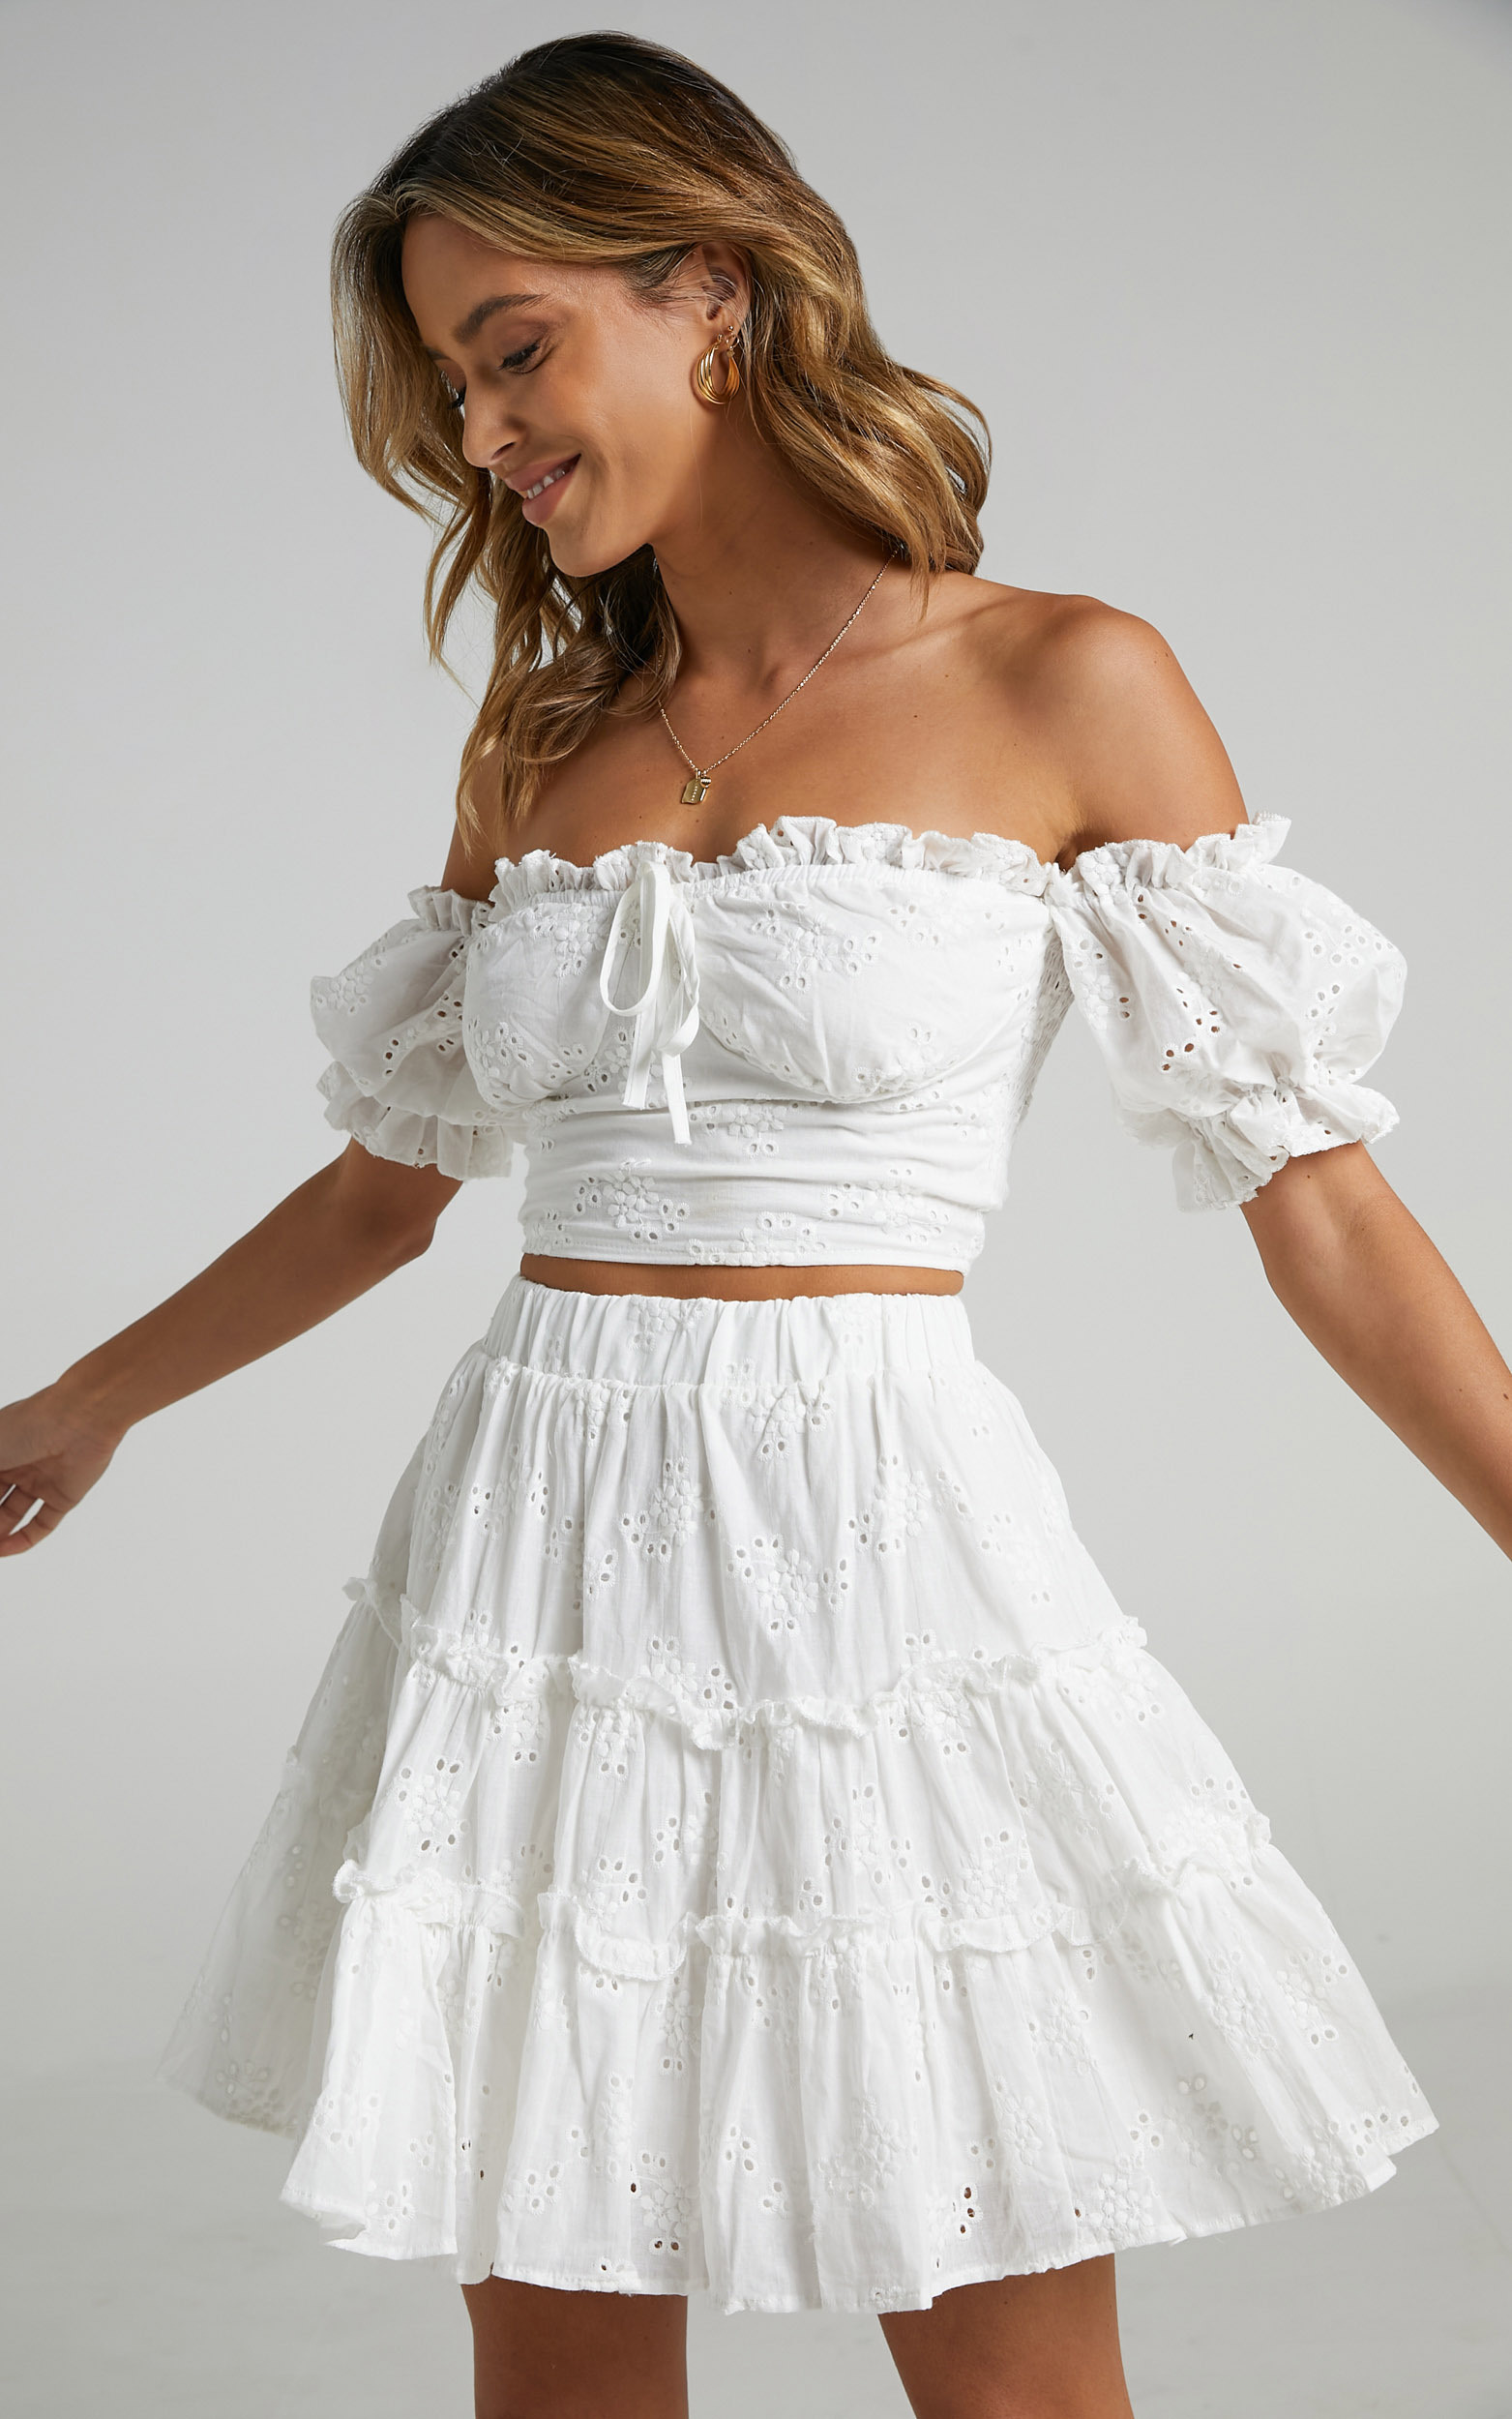 Hallie two piece set in White Embroidery - 06, WHT1, hi-res image number null